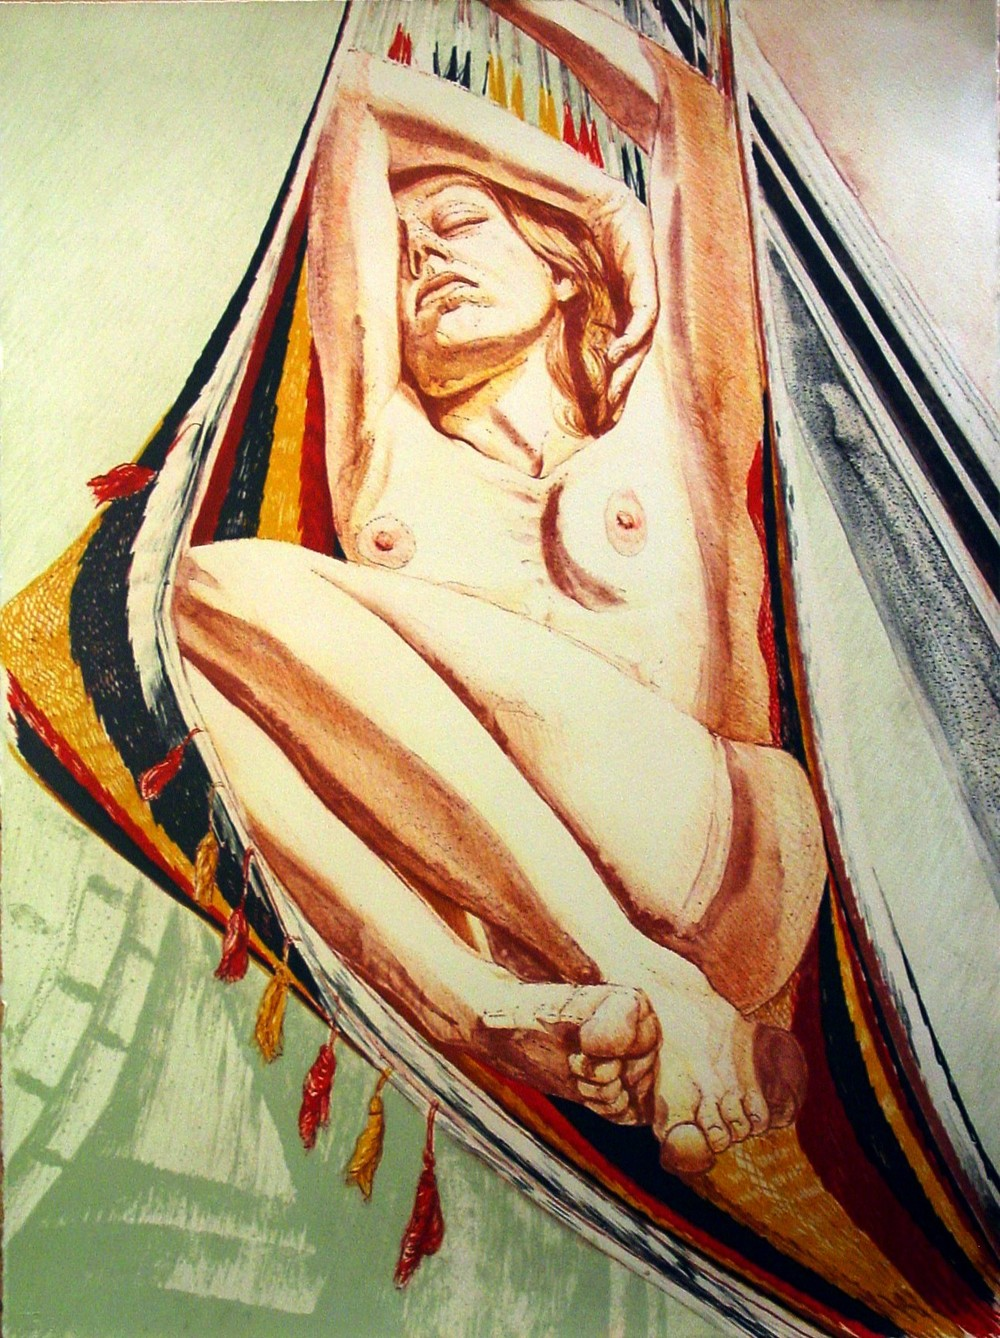 1978, Philip Pearlstein, Girl on Hammock, 1978, Color Lithograph.JPG